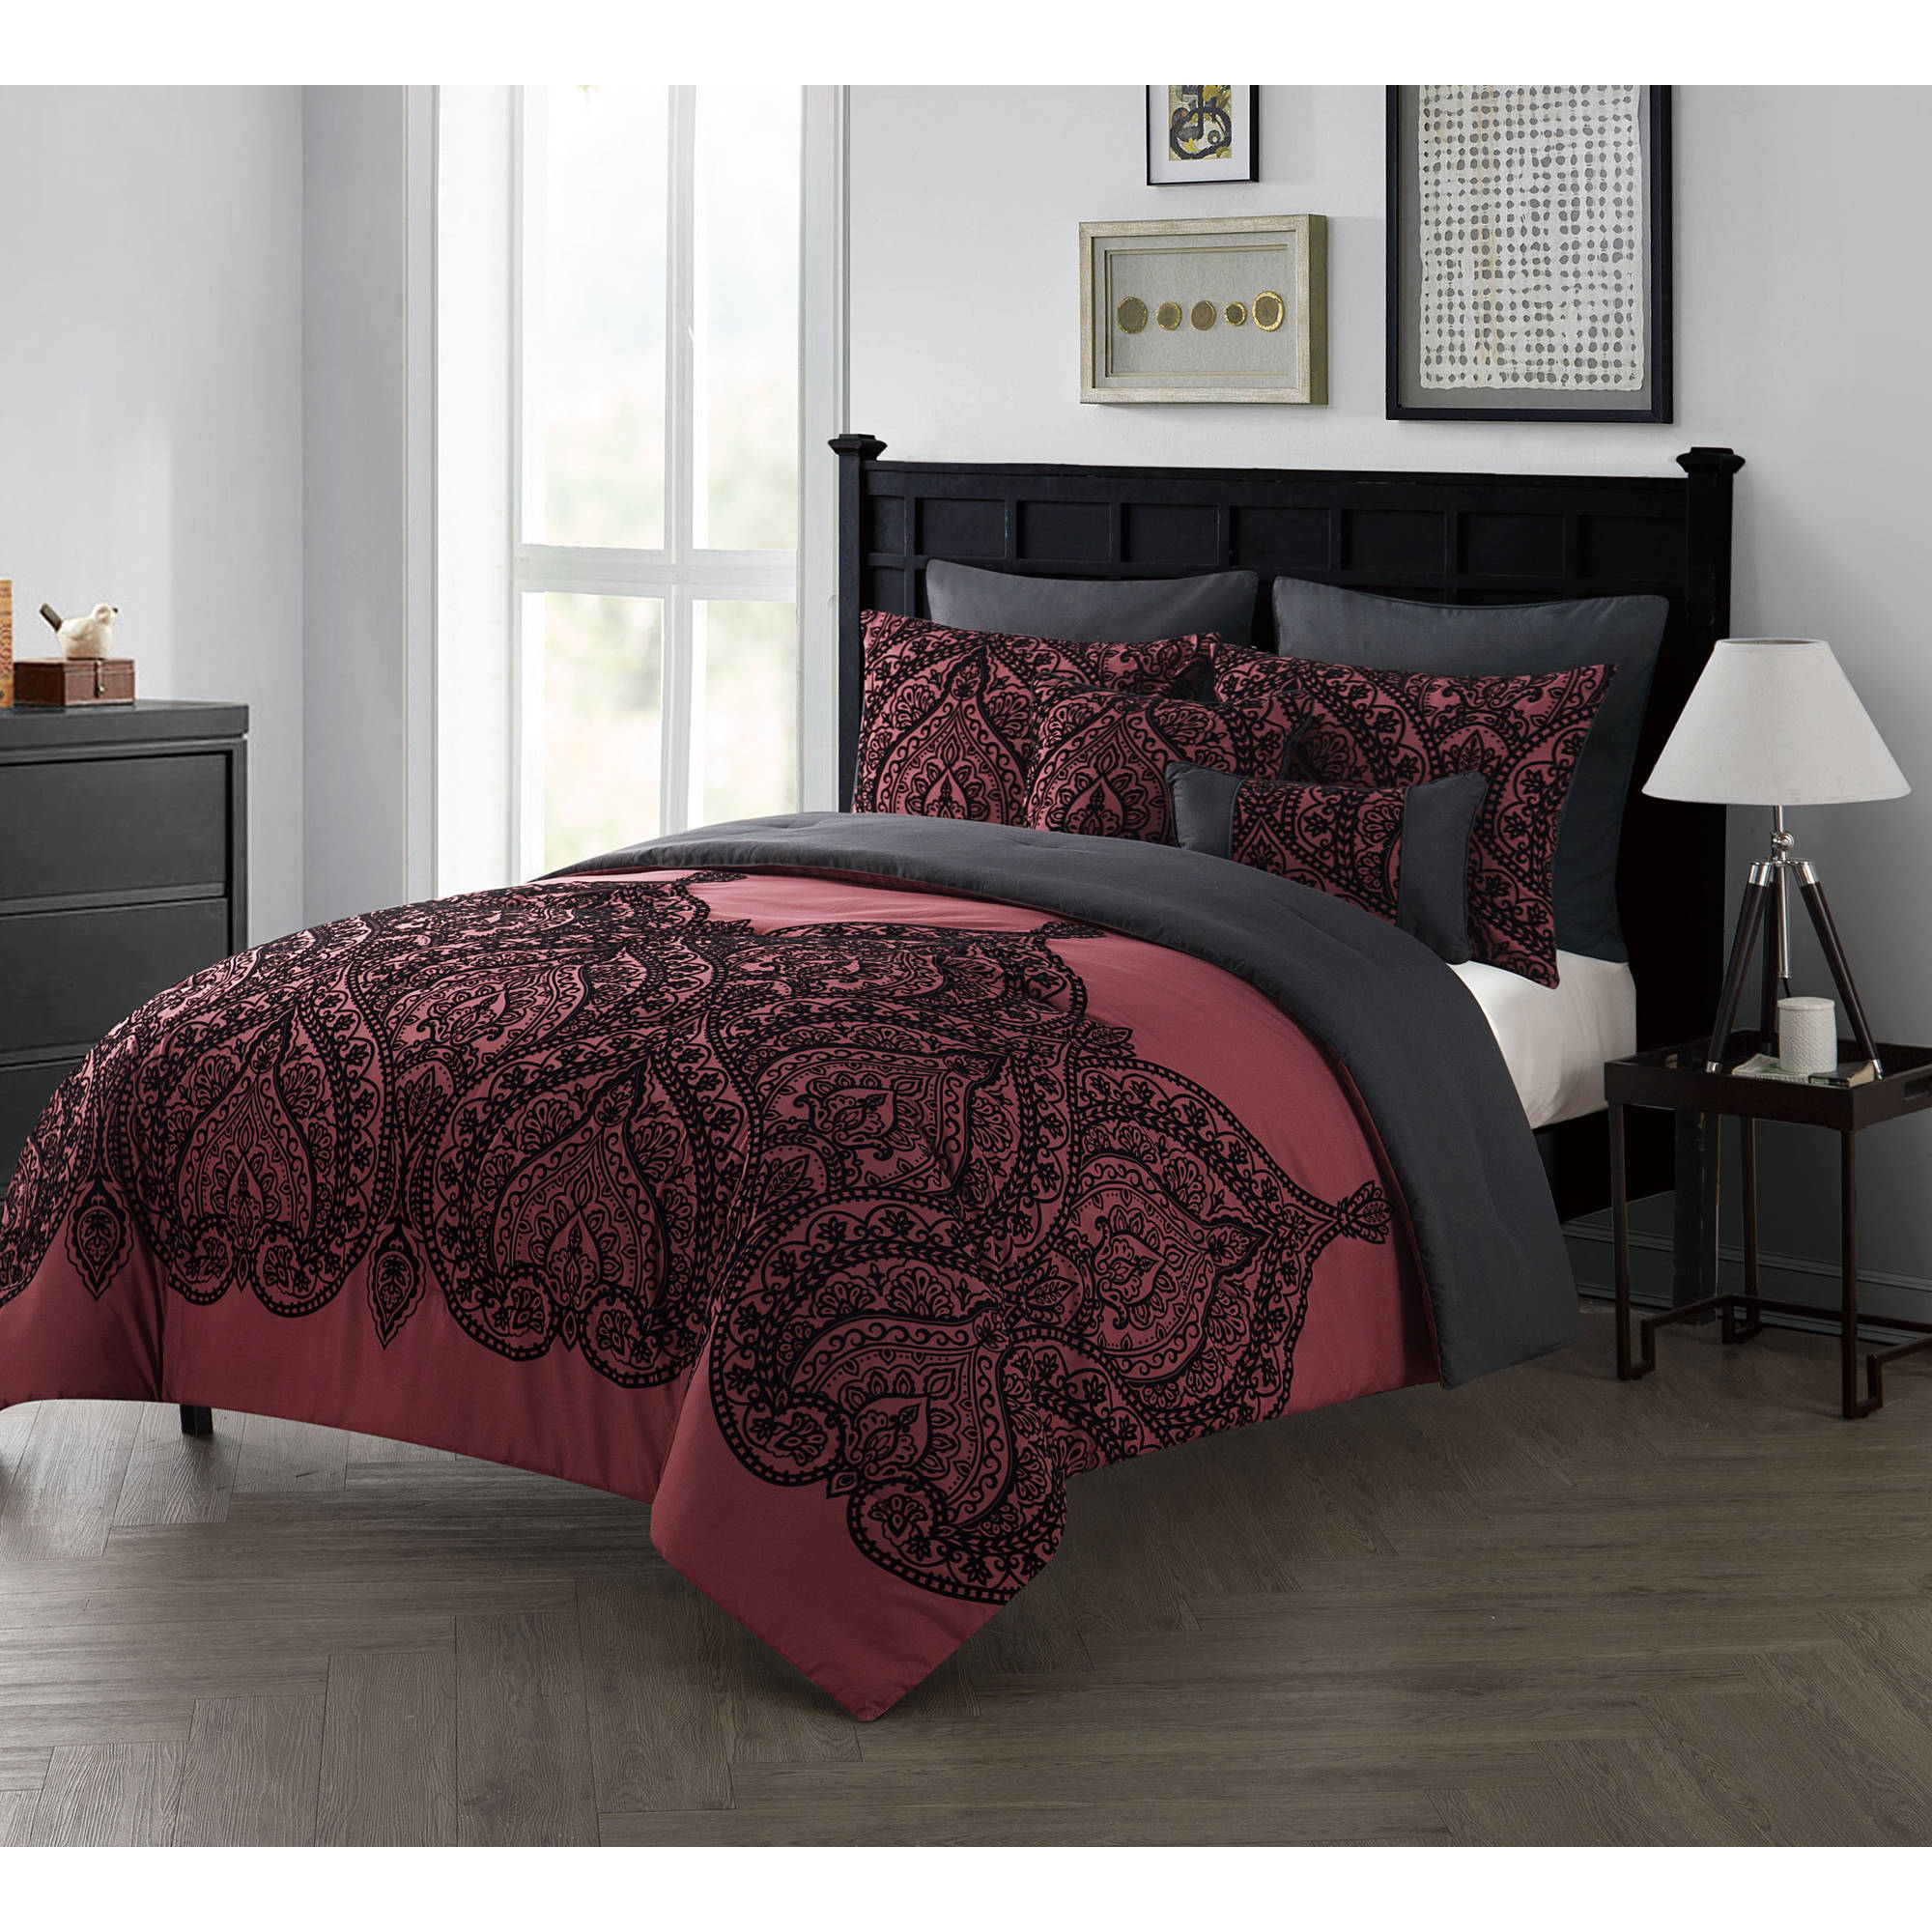 of sale by reversible piece bedding cotton floral cover shades quilt medallion white beige paisley covers gray in duvet home pattern walmart tahari tan king set